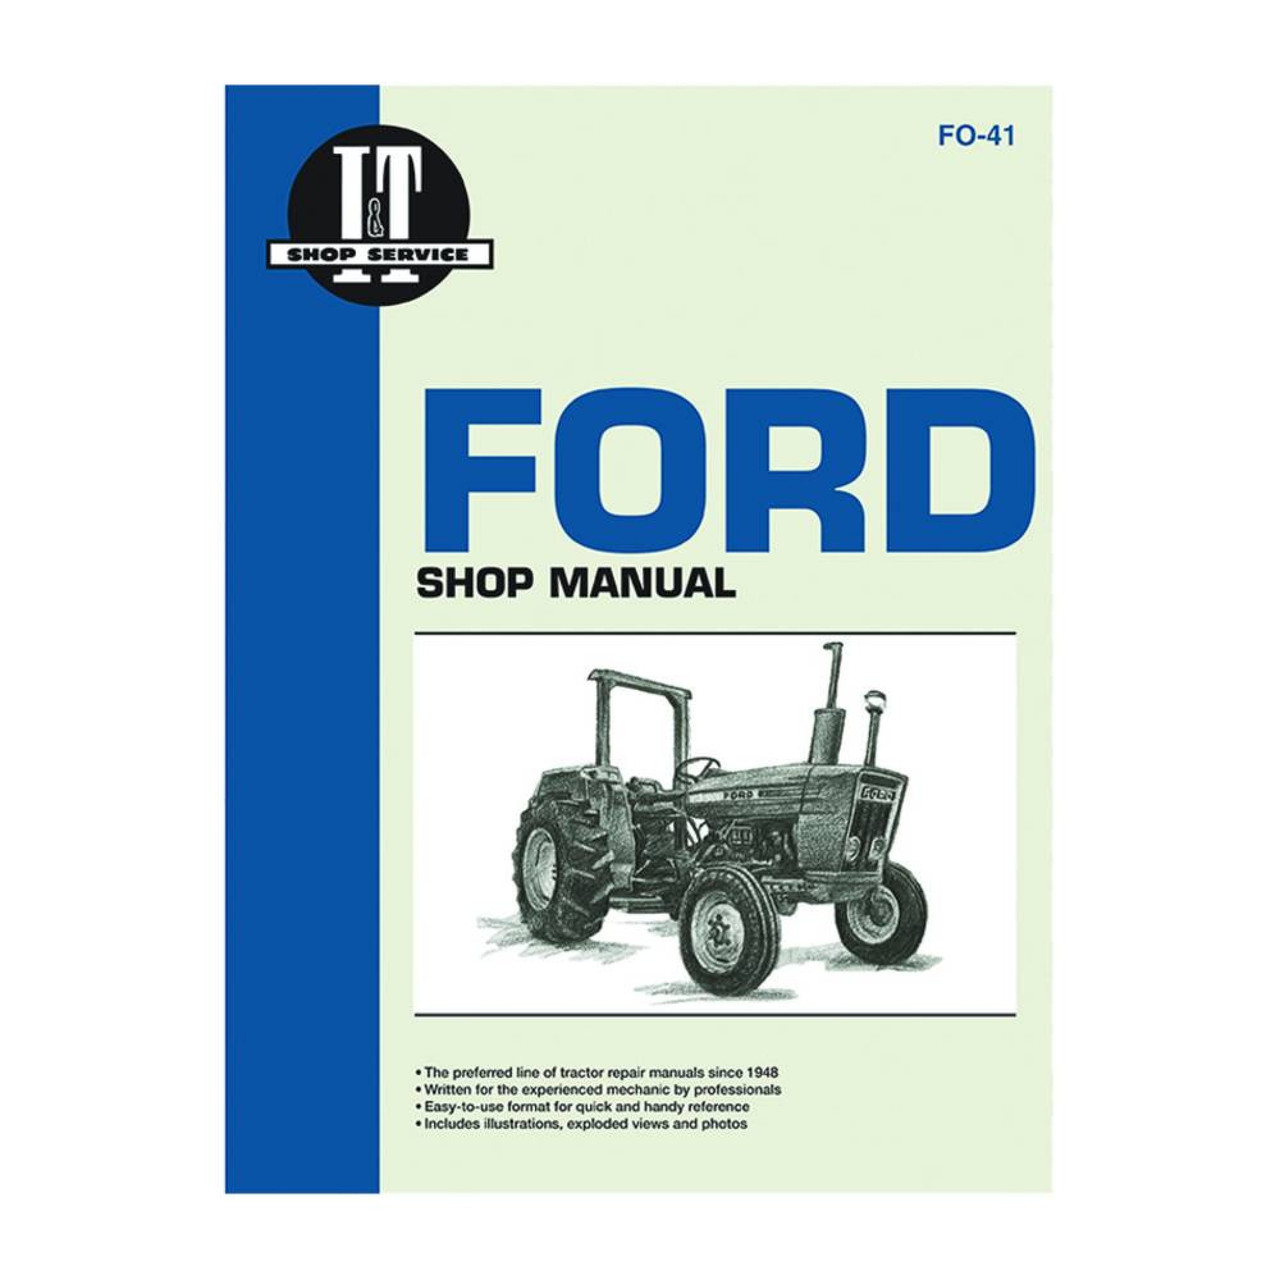 service manual ford new holland tractor fo 41 2310 2600 2610 3600 2310 ford tractor wiring harness diagram [ 1280 x 1280 Pixel ]